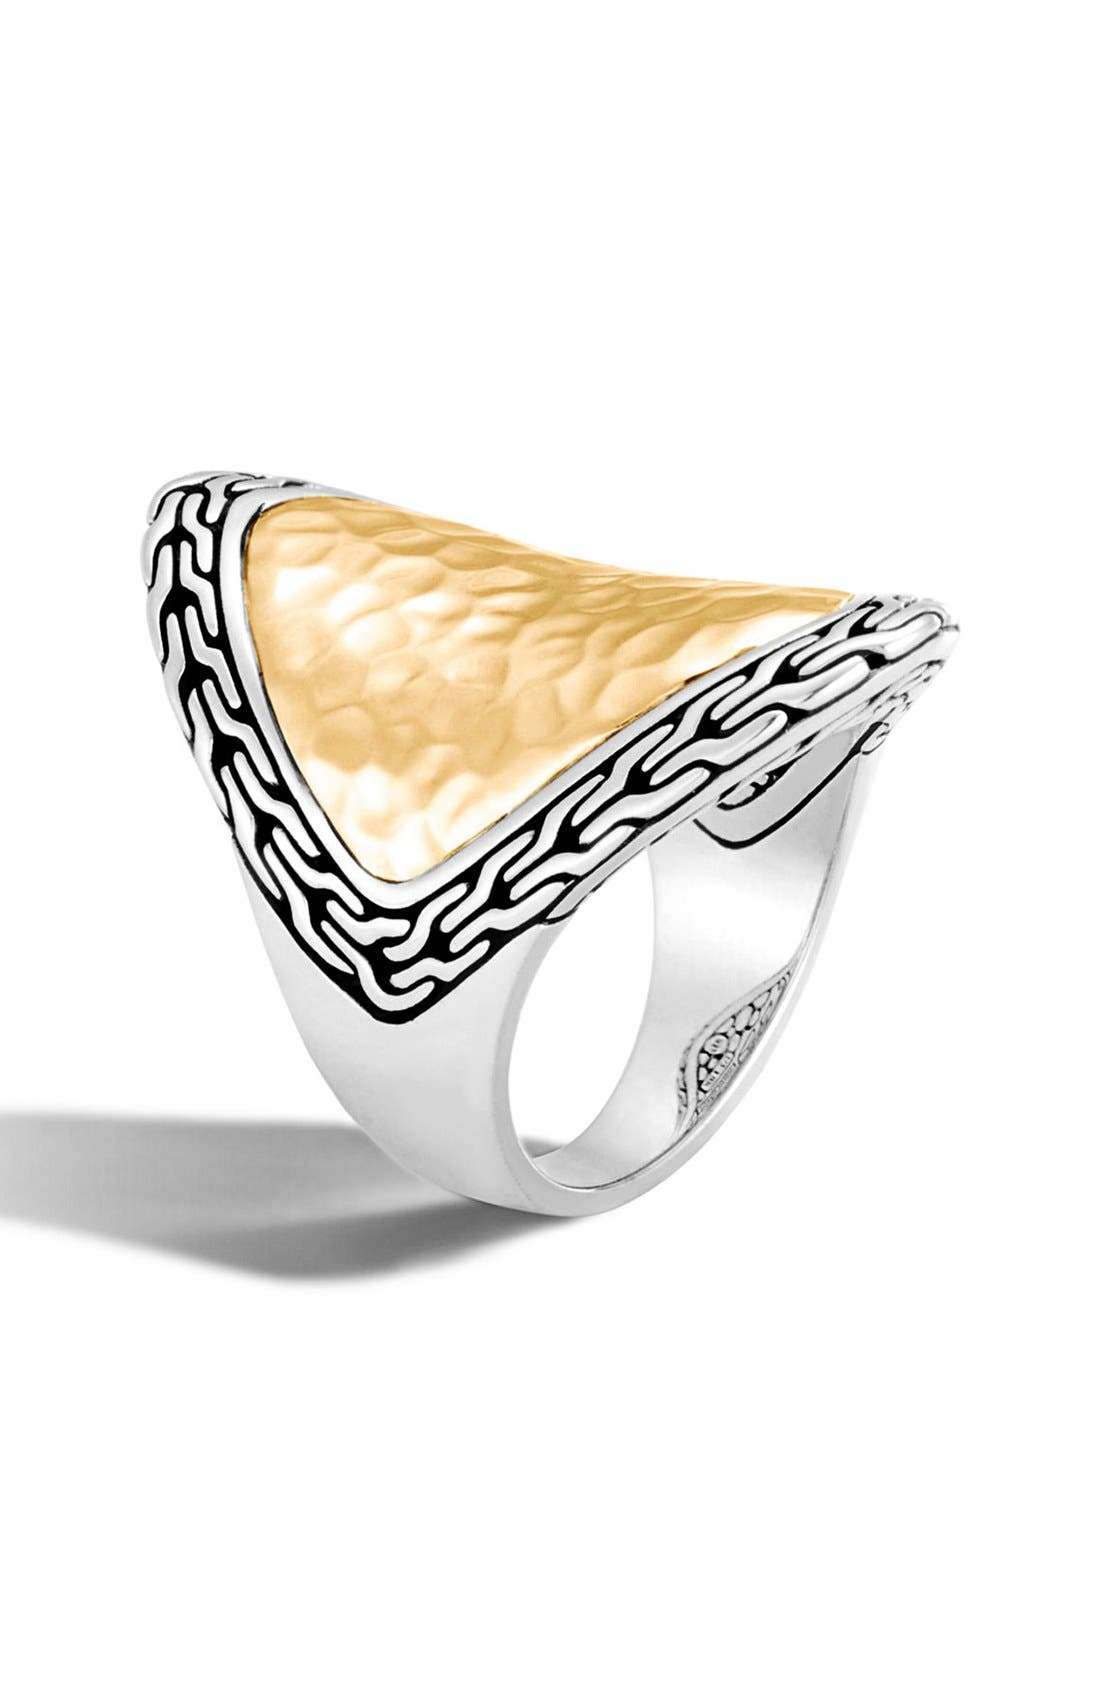 Heritage Marquise Ring,                             Main thumbnail 1, color,                             Silver/ Gold